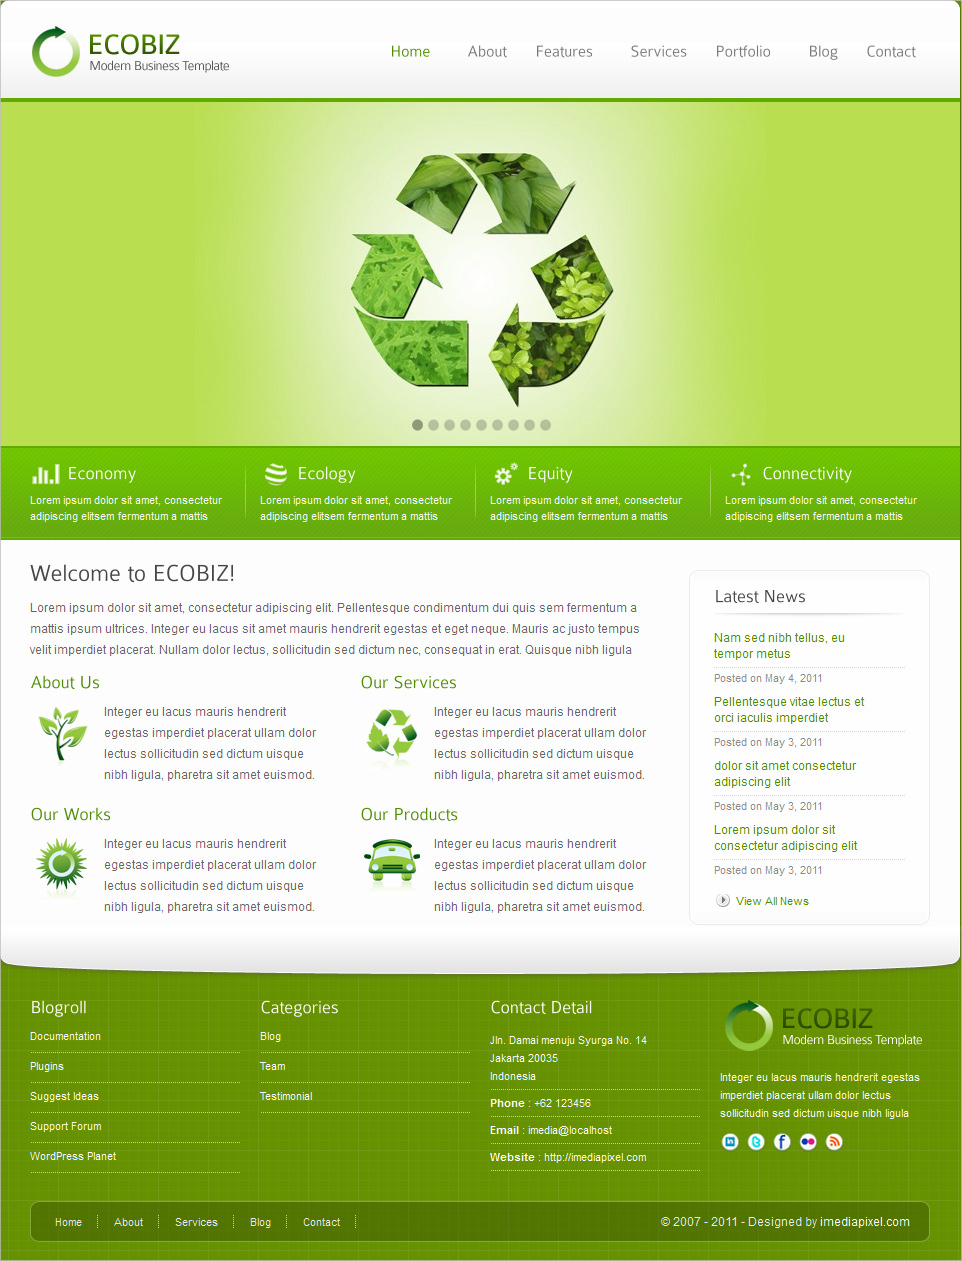 Eco Business WordPress Theme - $44